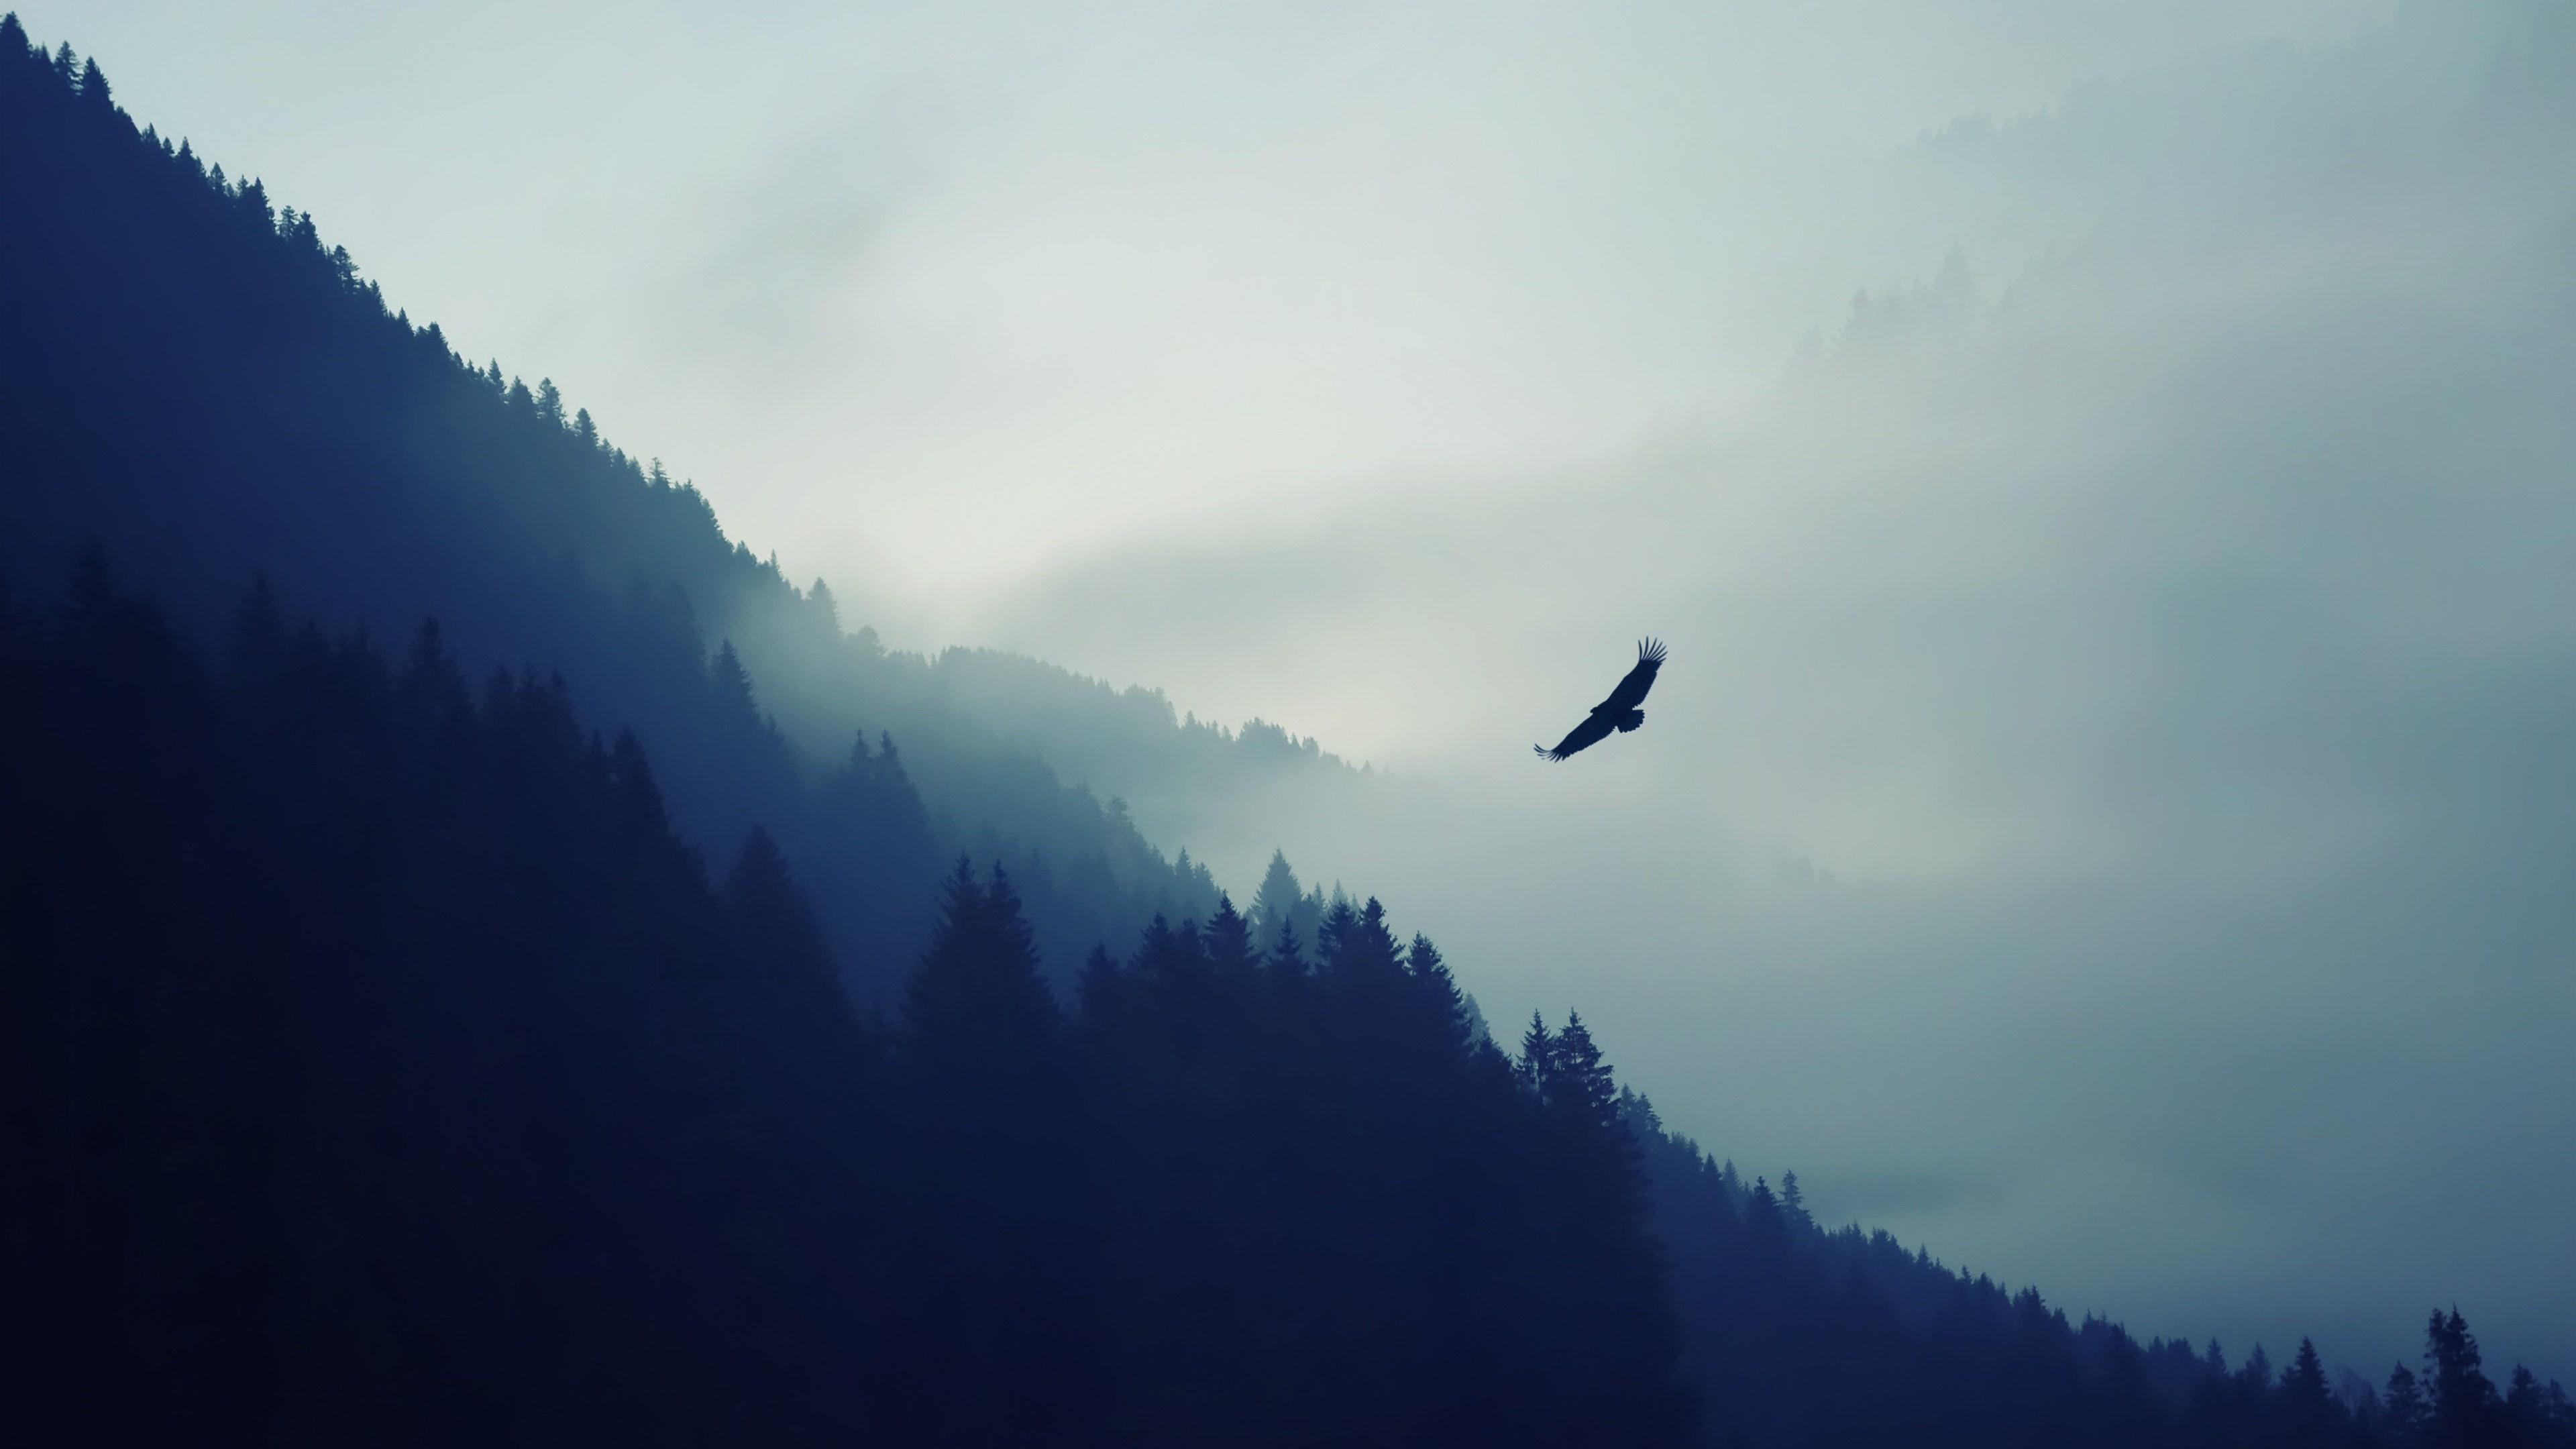 Eagle flies over the forest wallpaper